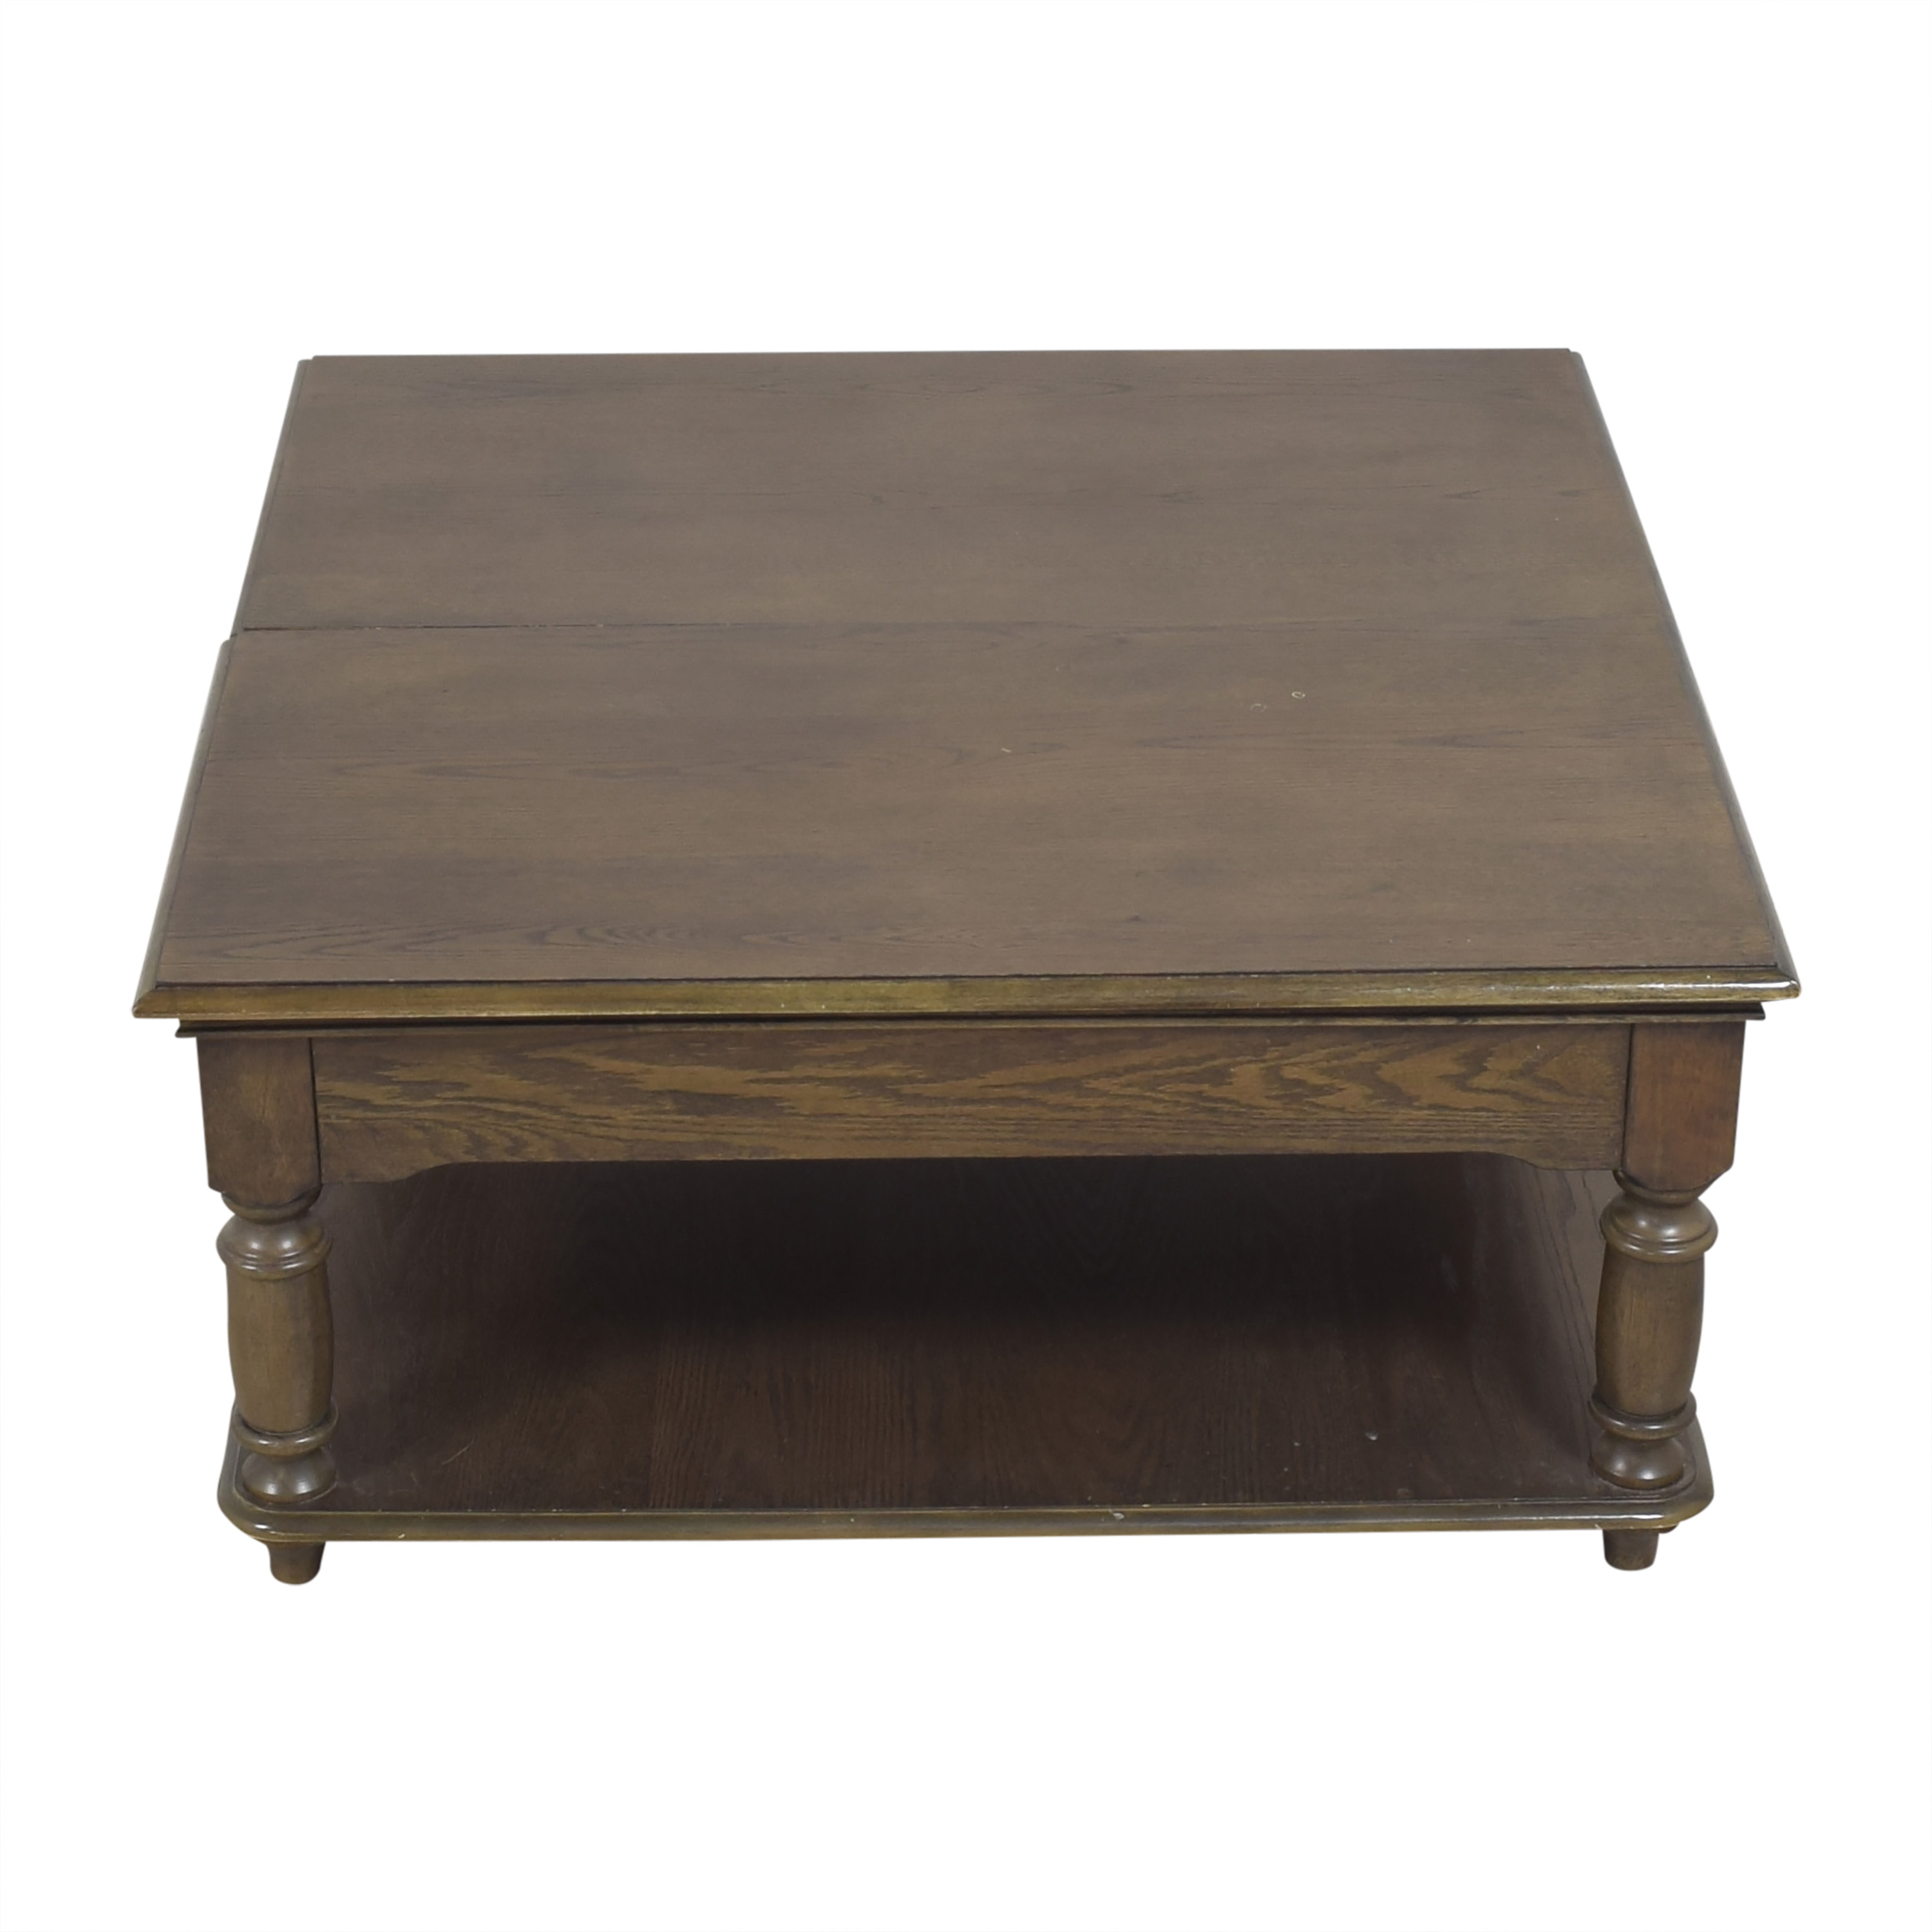 Riverside Furniture Square Lift-Top Coffee Table / Tables